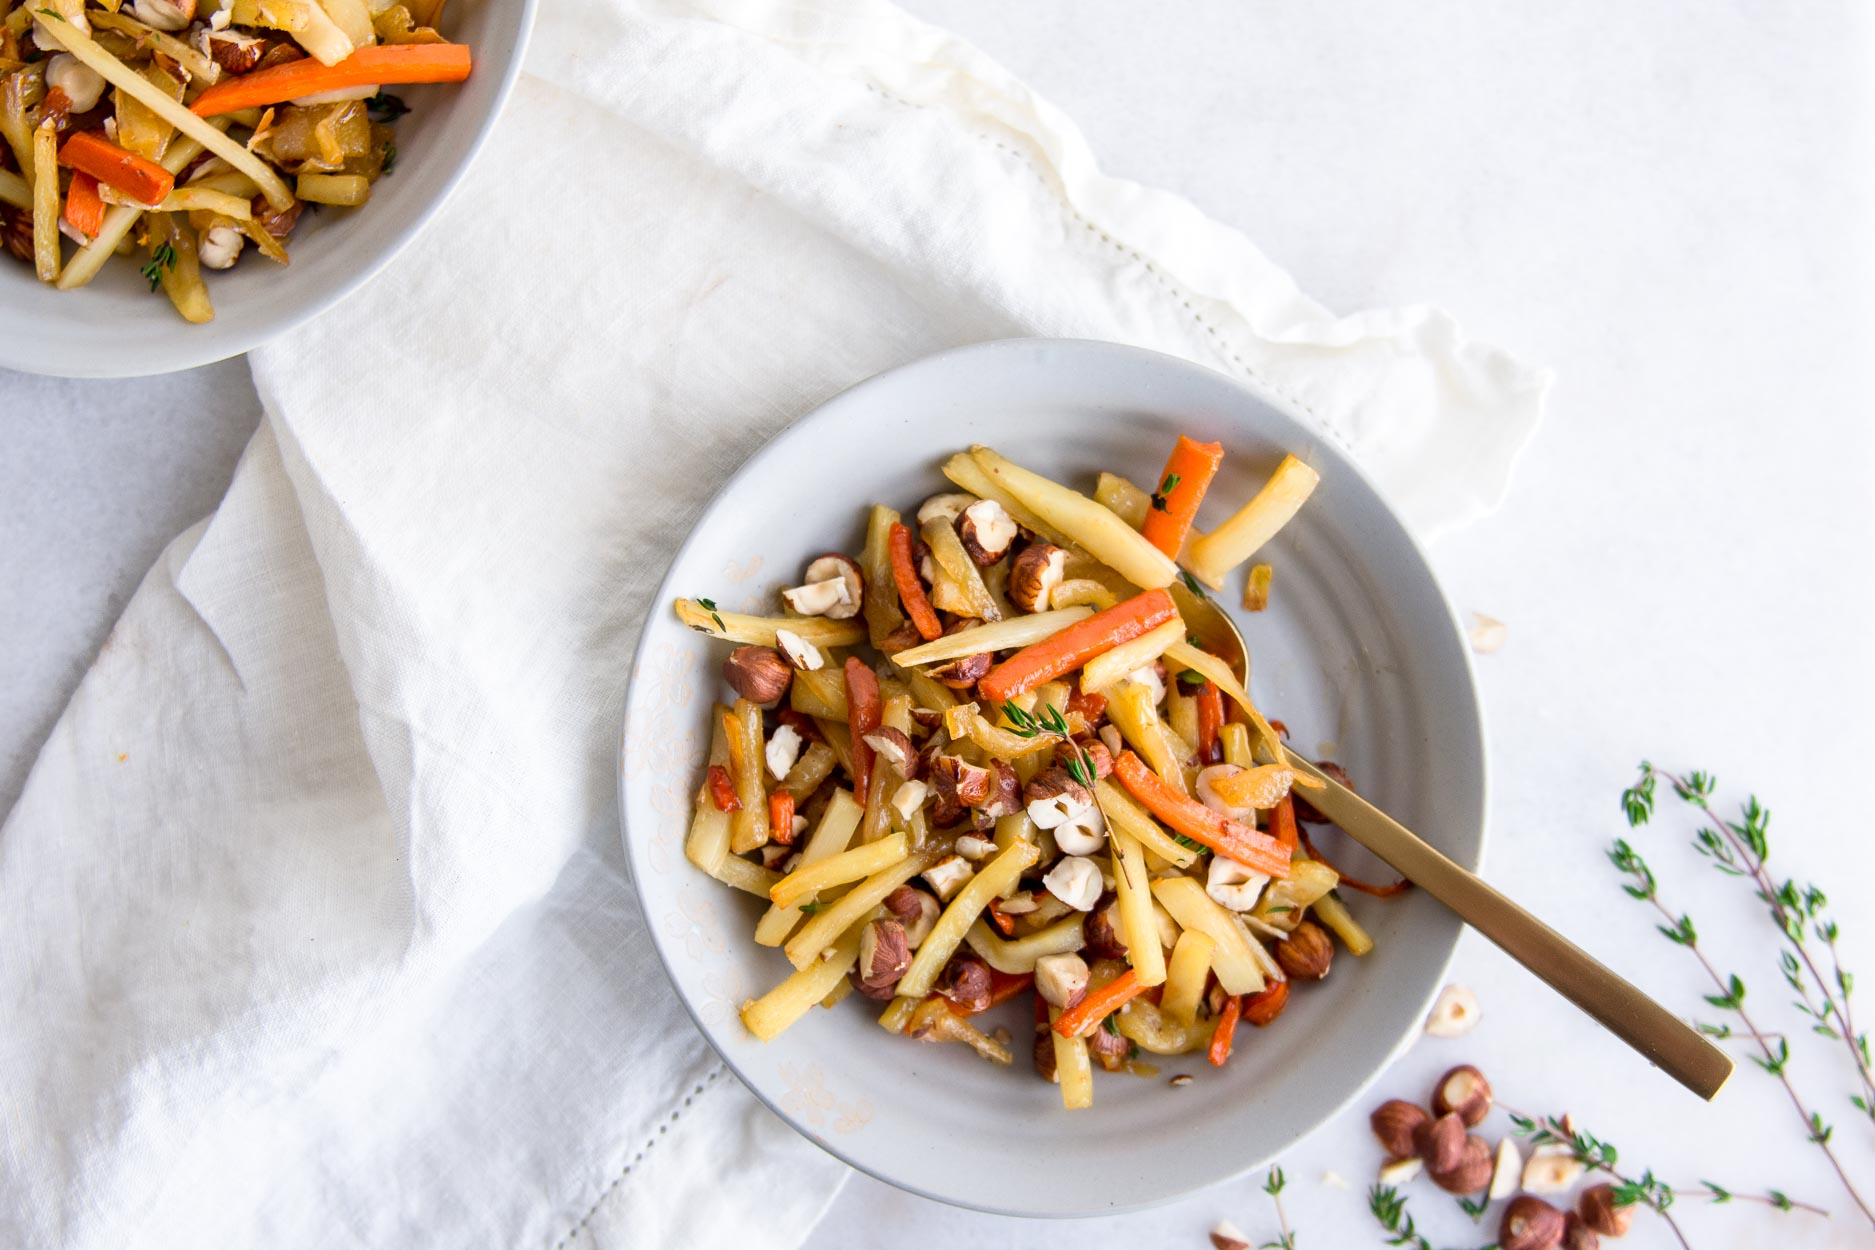 maple-glazed root vegetables with hazelnuts in bowls